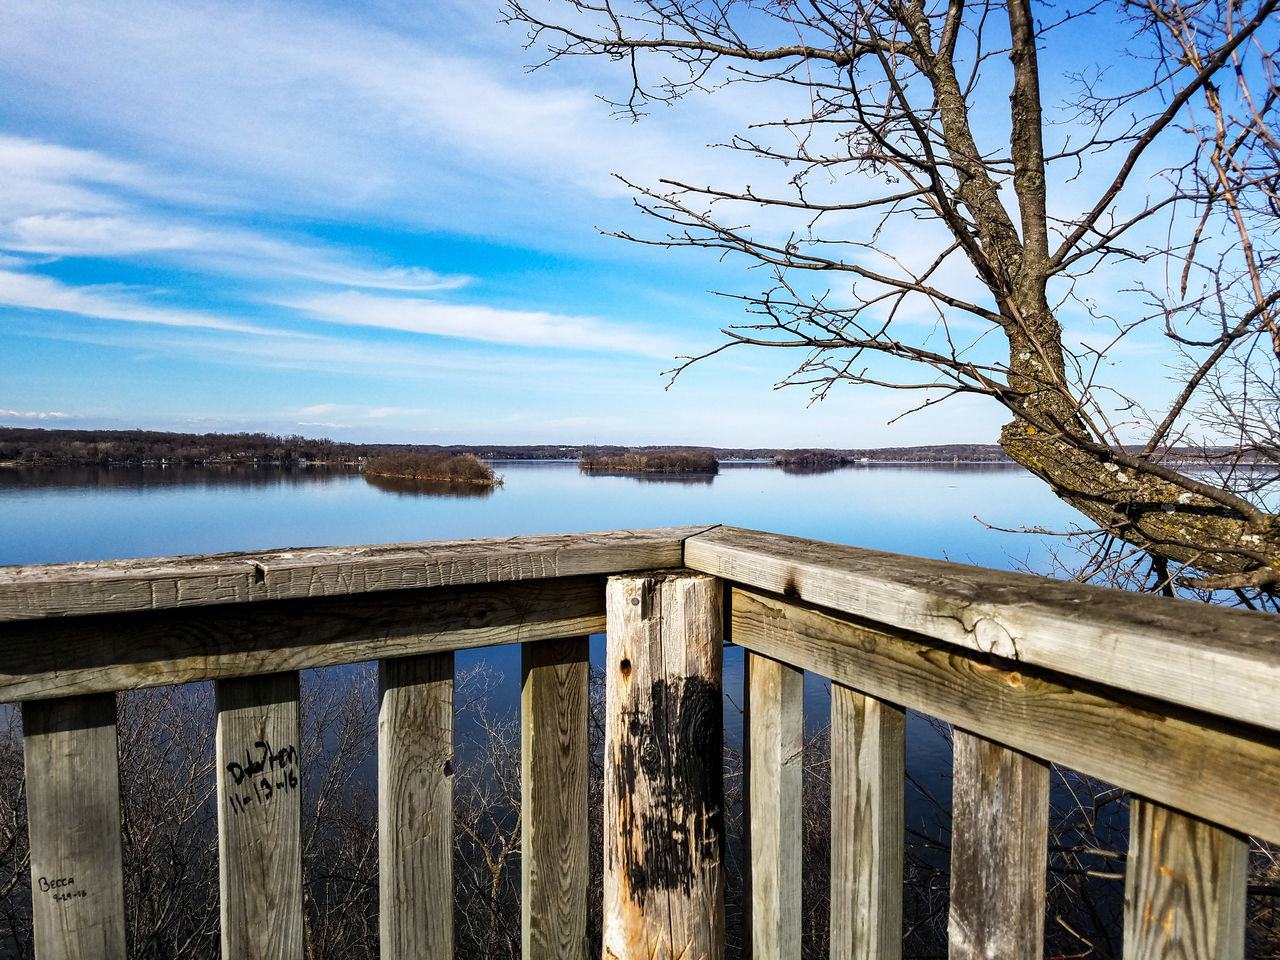 wood - material, sky, nature, pier, tranquility, day, outdoors, no people, water, lake, beauty in nature, scenics, tree